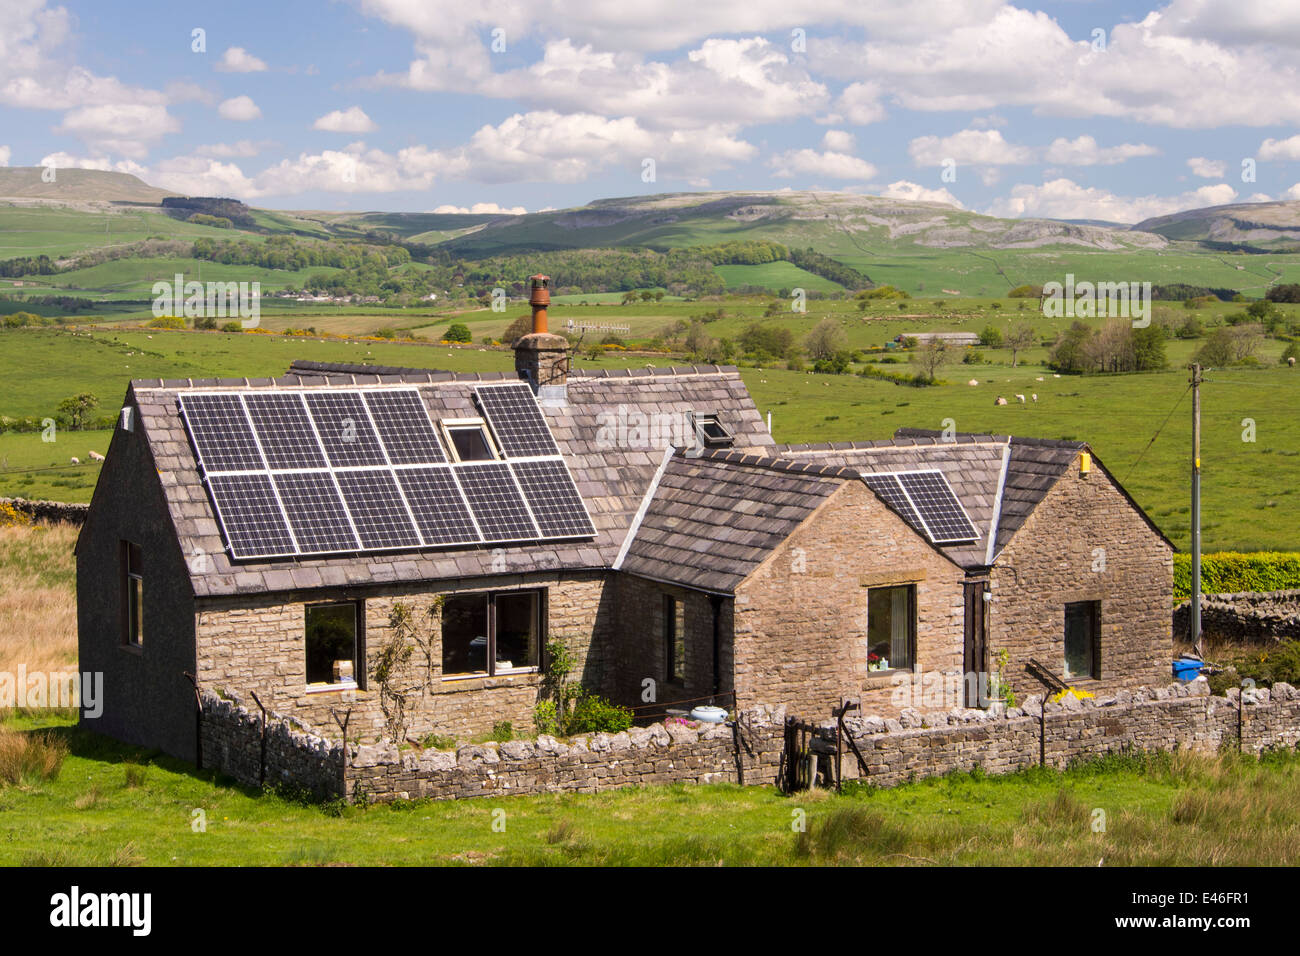 A remote house with solar panels in the Forest of Bowland, looking across to the Yorkshire Dales, UK. - Stock Image